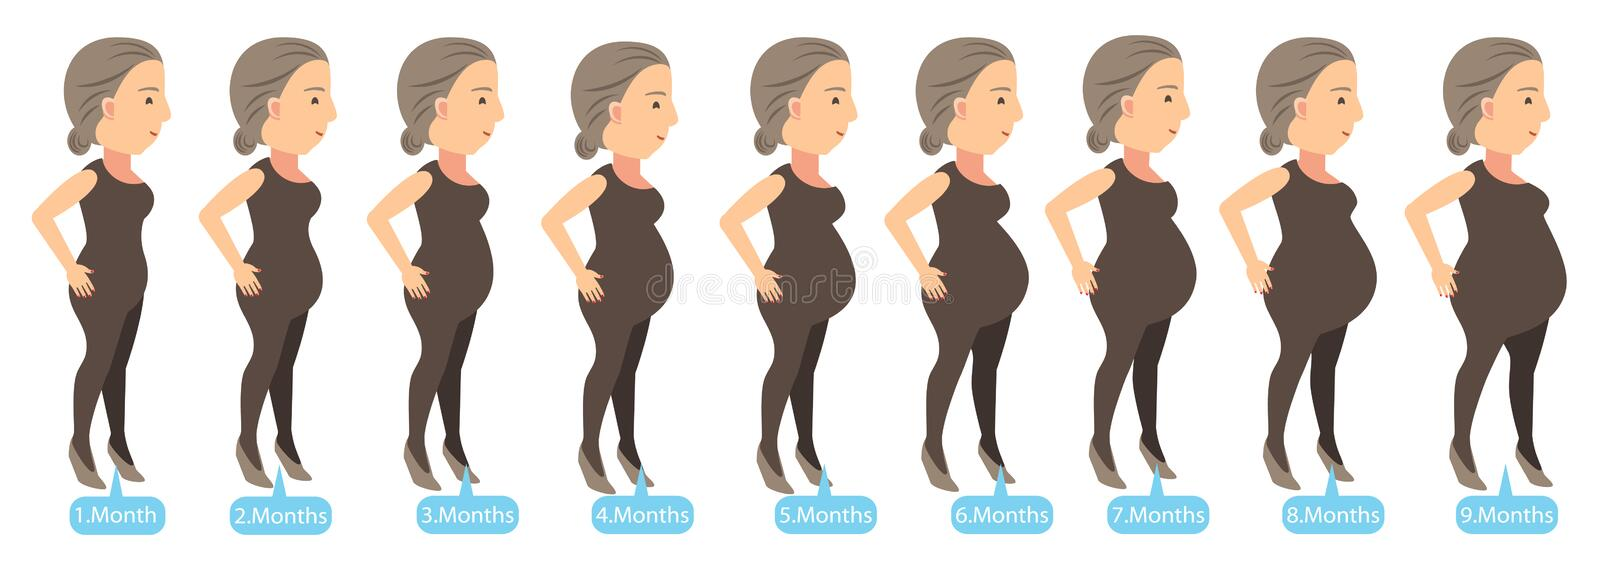 Pregnancy Stages. Stages of changes in a woman's body in pregnancy. Vector illustration vector illustration